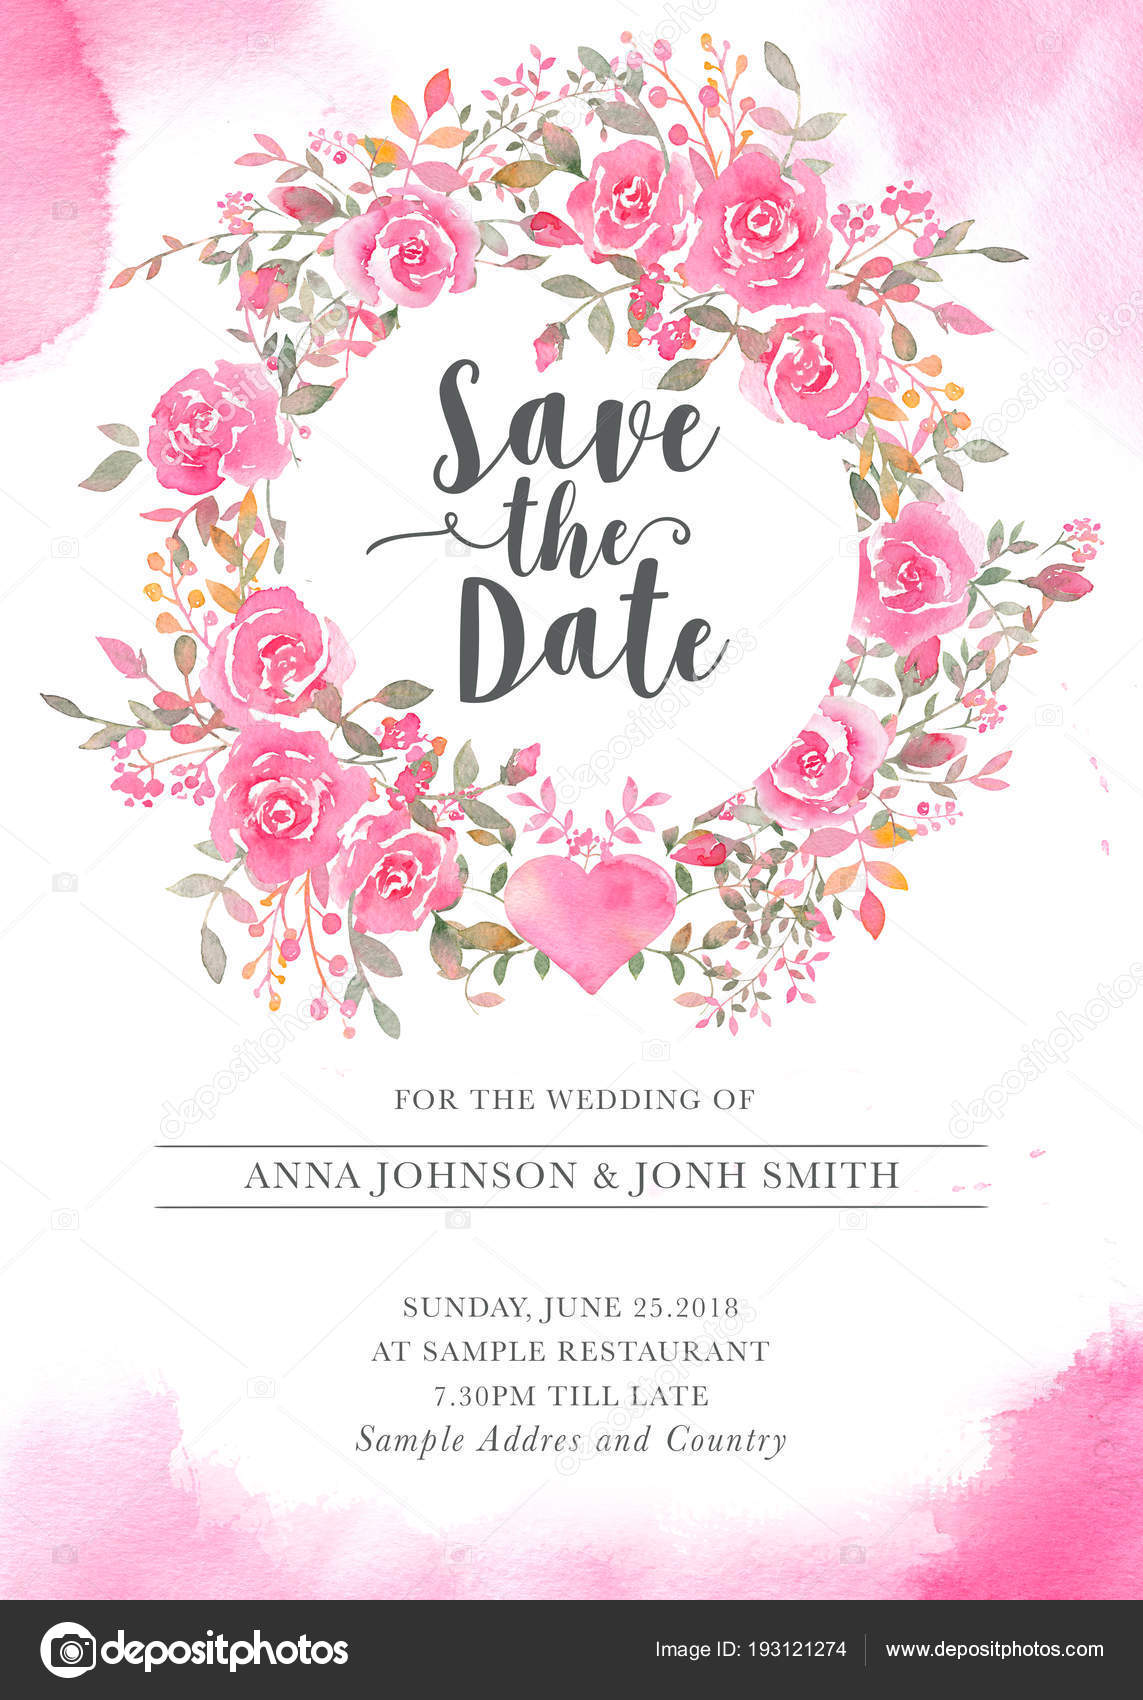 Wedding invitation card template with watercolor rose flowers wedding invitation card template with watercolor rose flowers stock photo stopboris Images